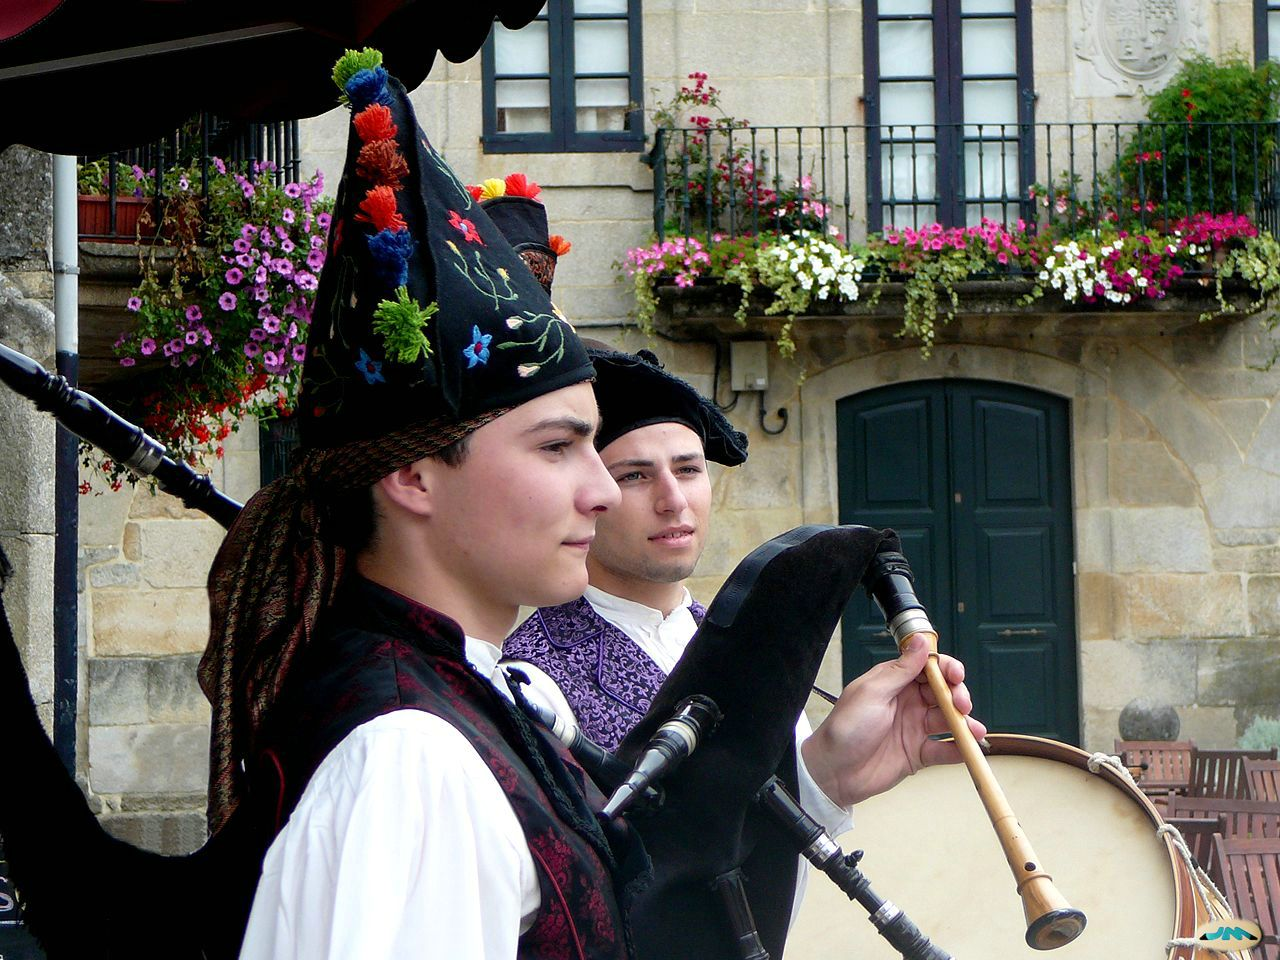 Caption: Gaieteros (Galician Bagpipers)